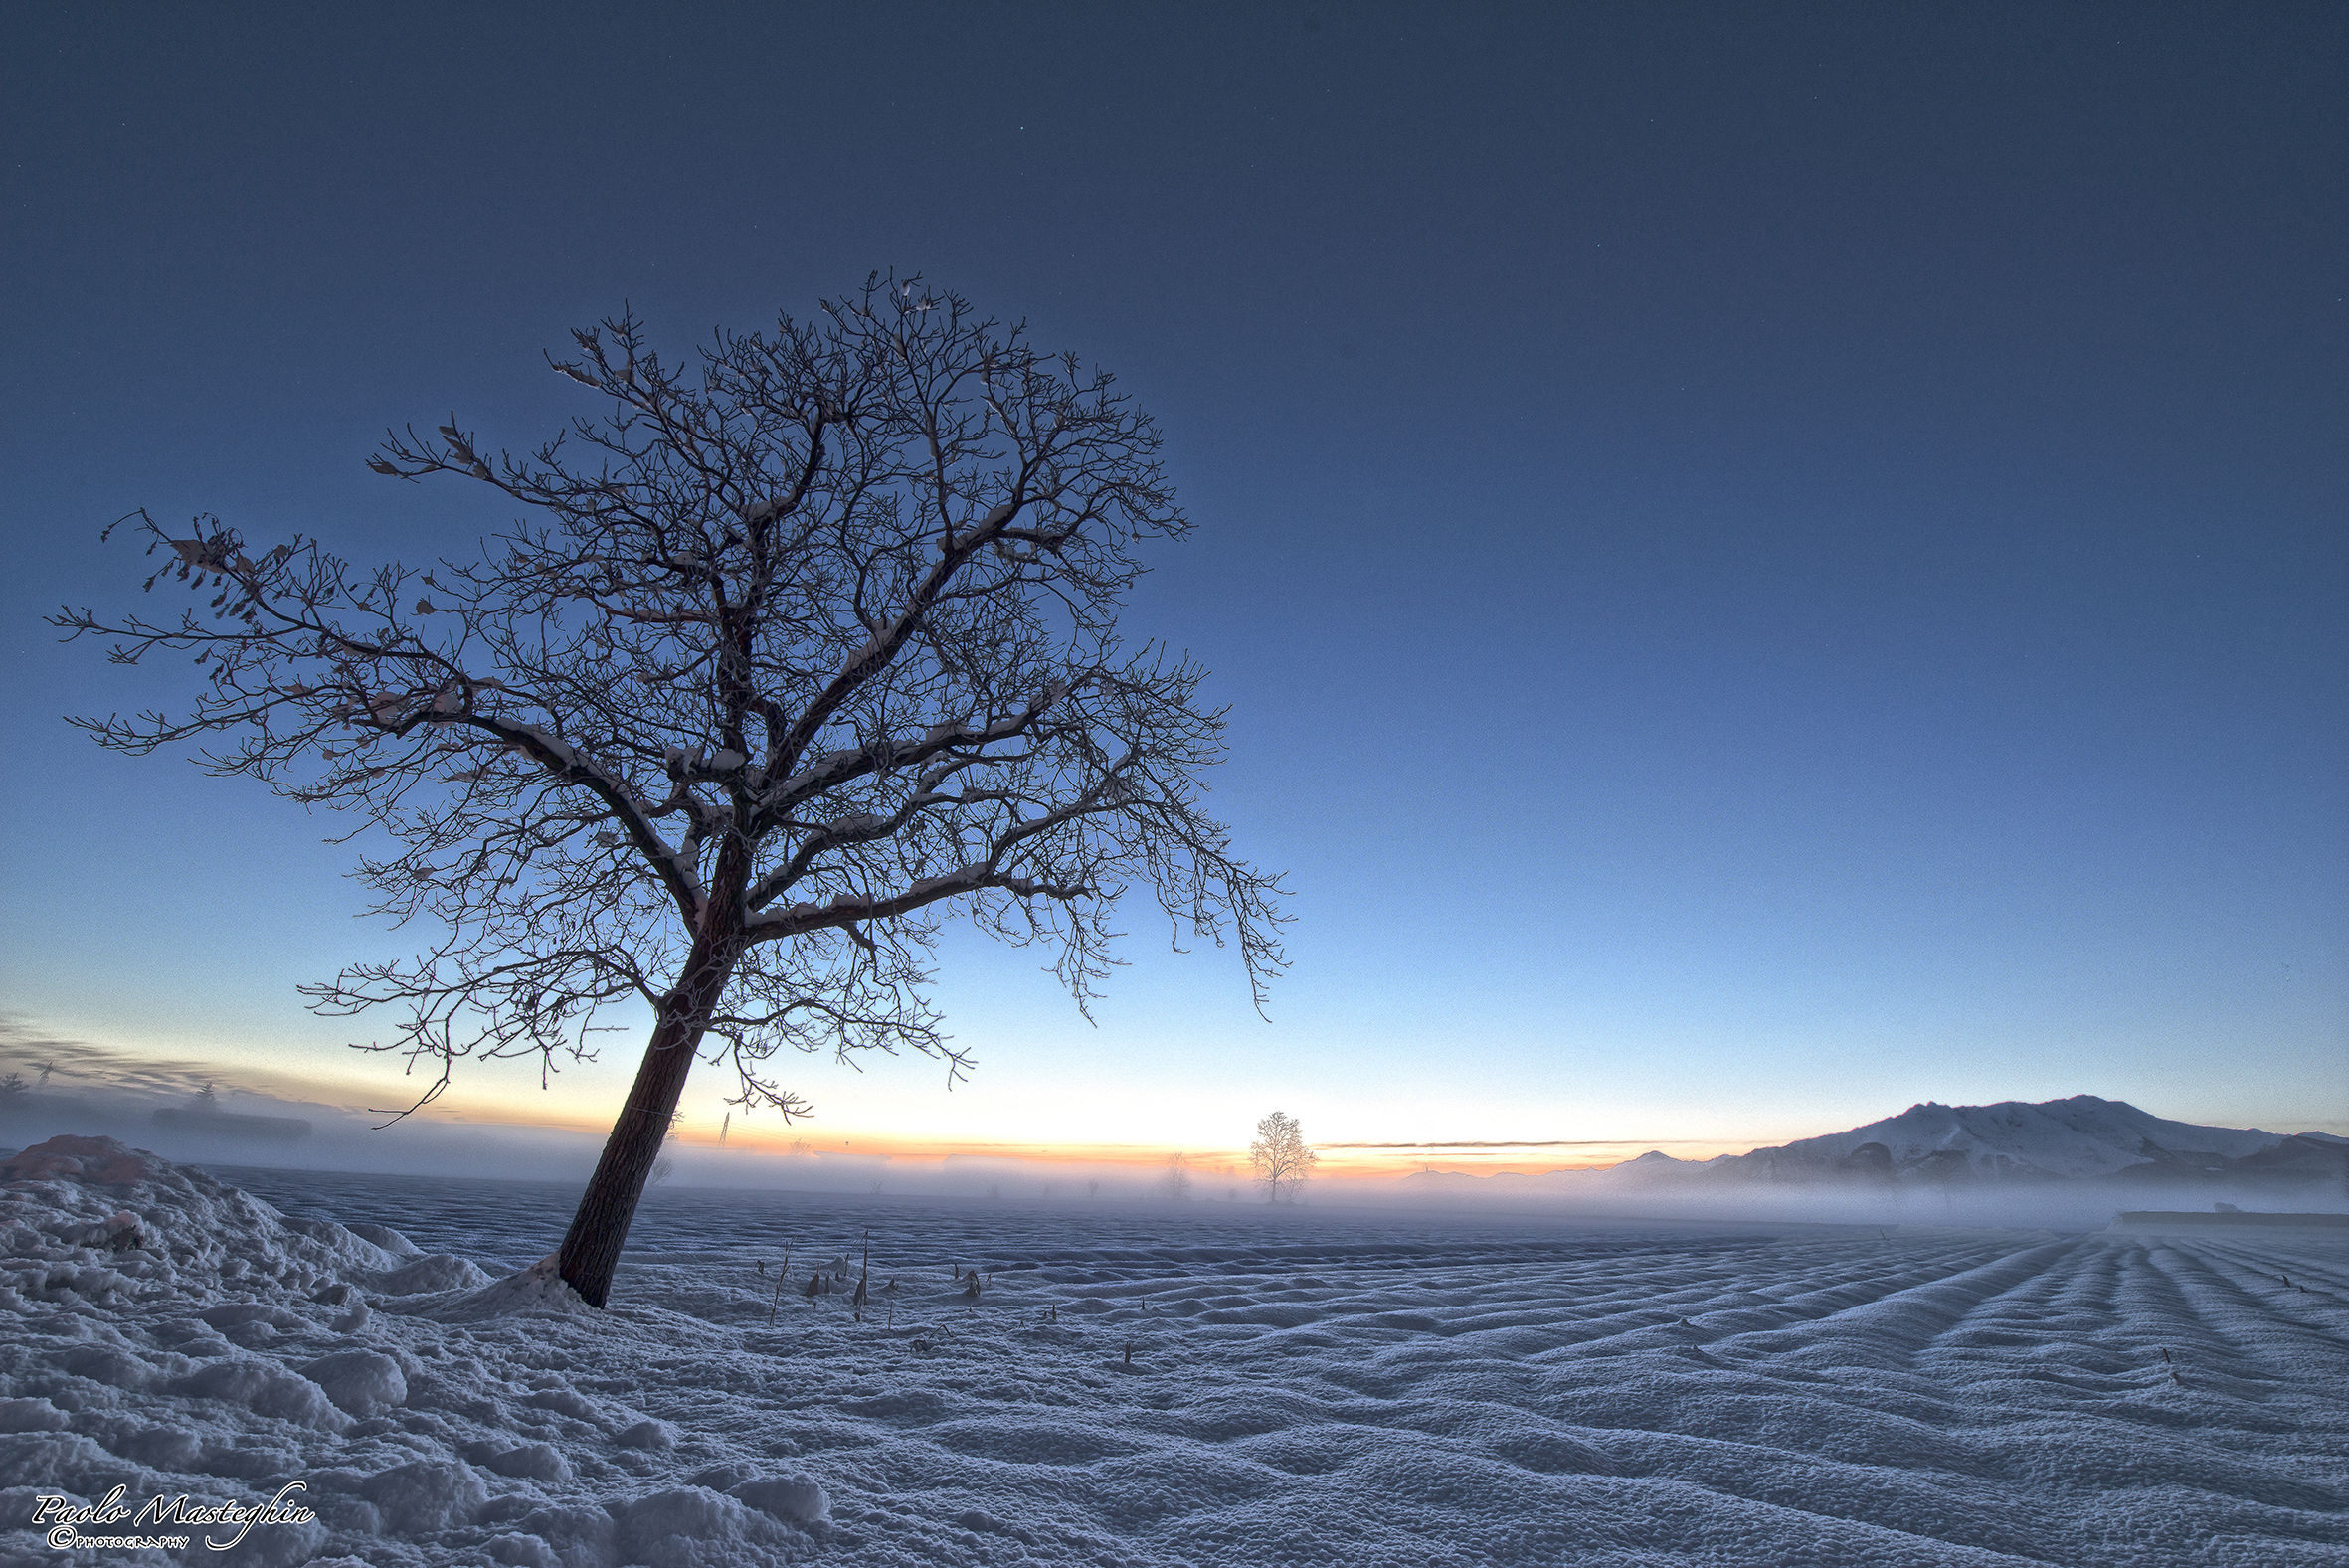 The dawn after heavy snowfall ......